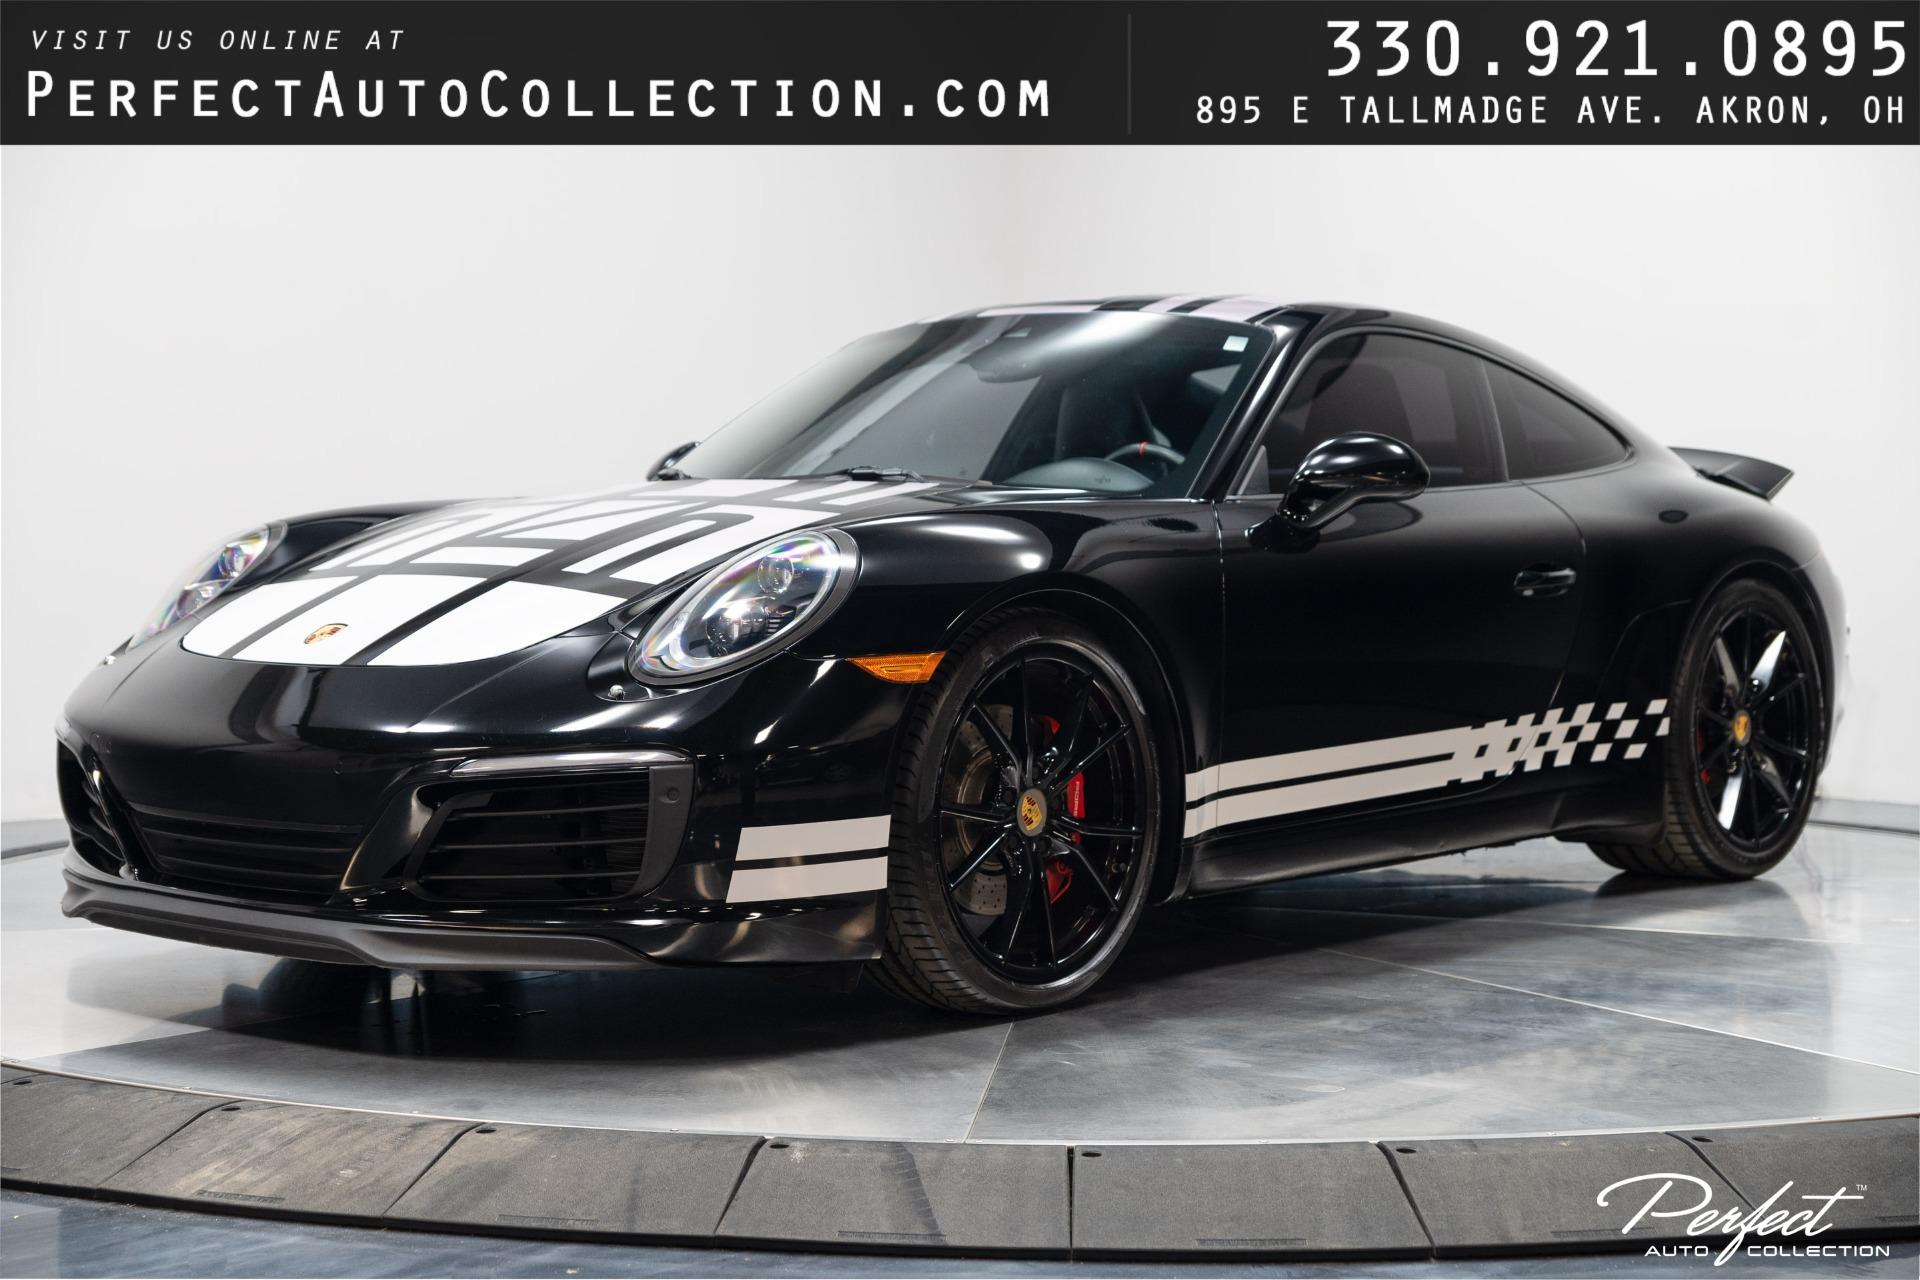 Used 2017 Porsche 911 Carrera S Endurance Racing Edition for sale $108,995 at Perfect Auto Collection in Akron OH 44310 1